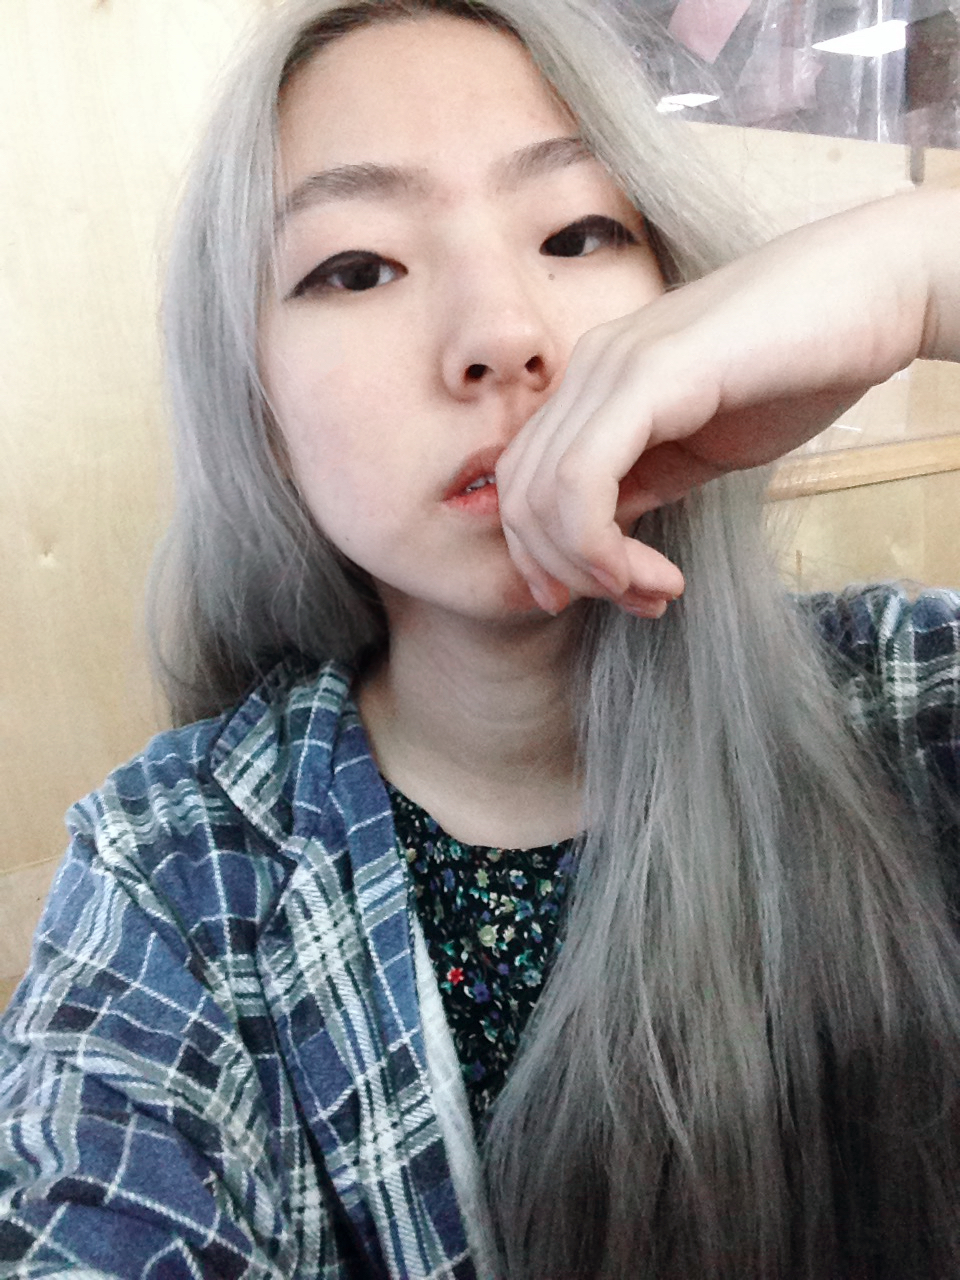 Virgin asian black hair to pastel steel pastel grey hair diy style virgin asian black hair to pastel steel pastel grey hair diy style solutioingenieria Image collections